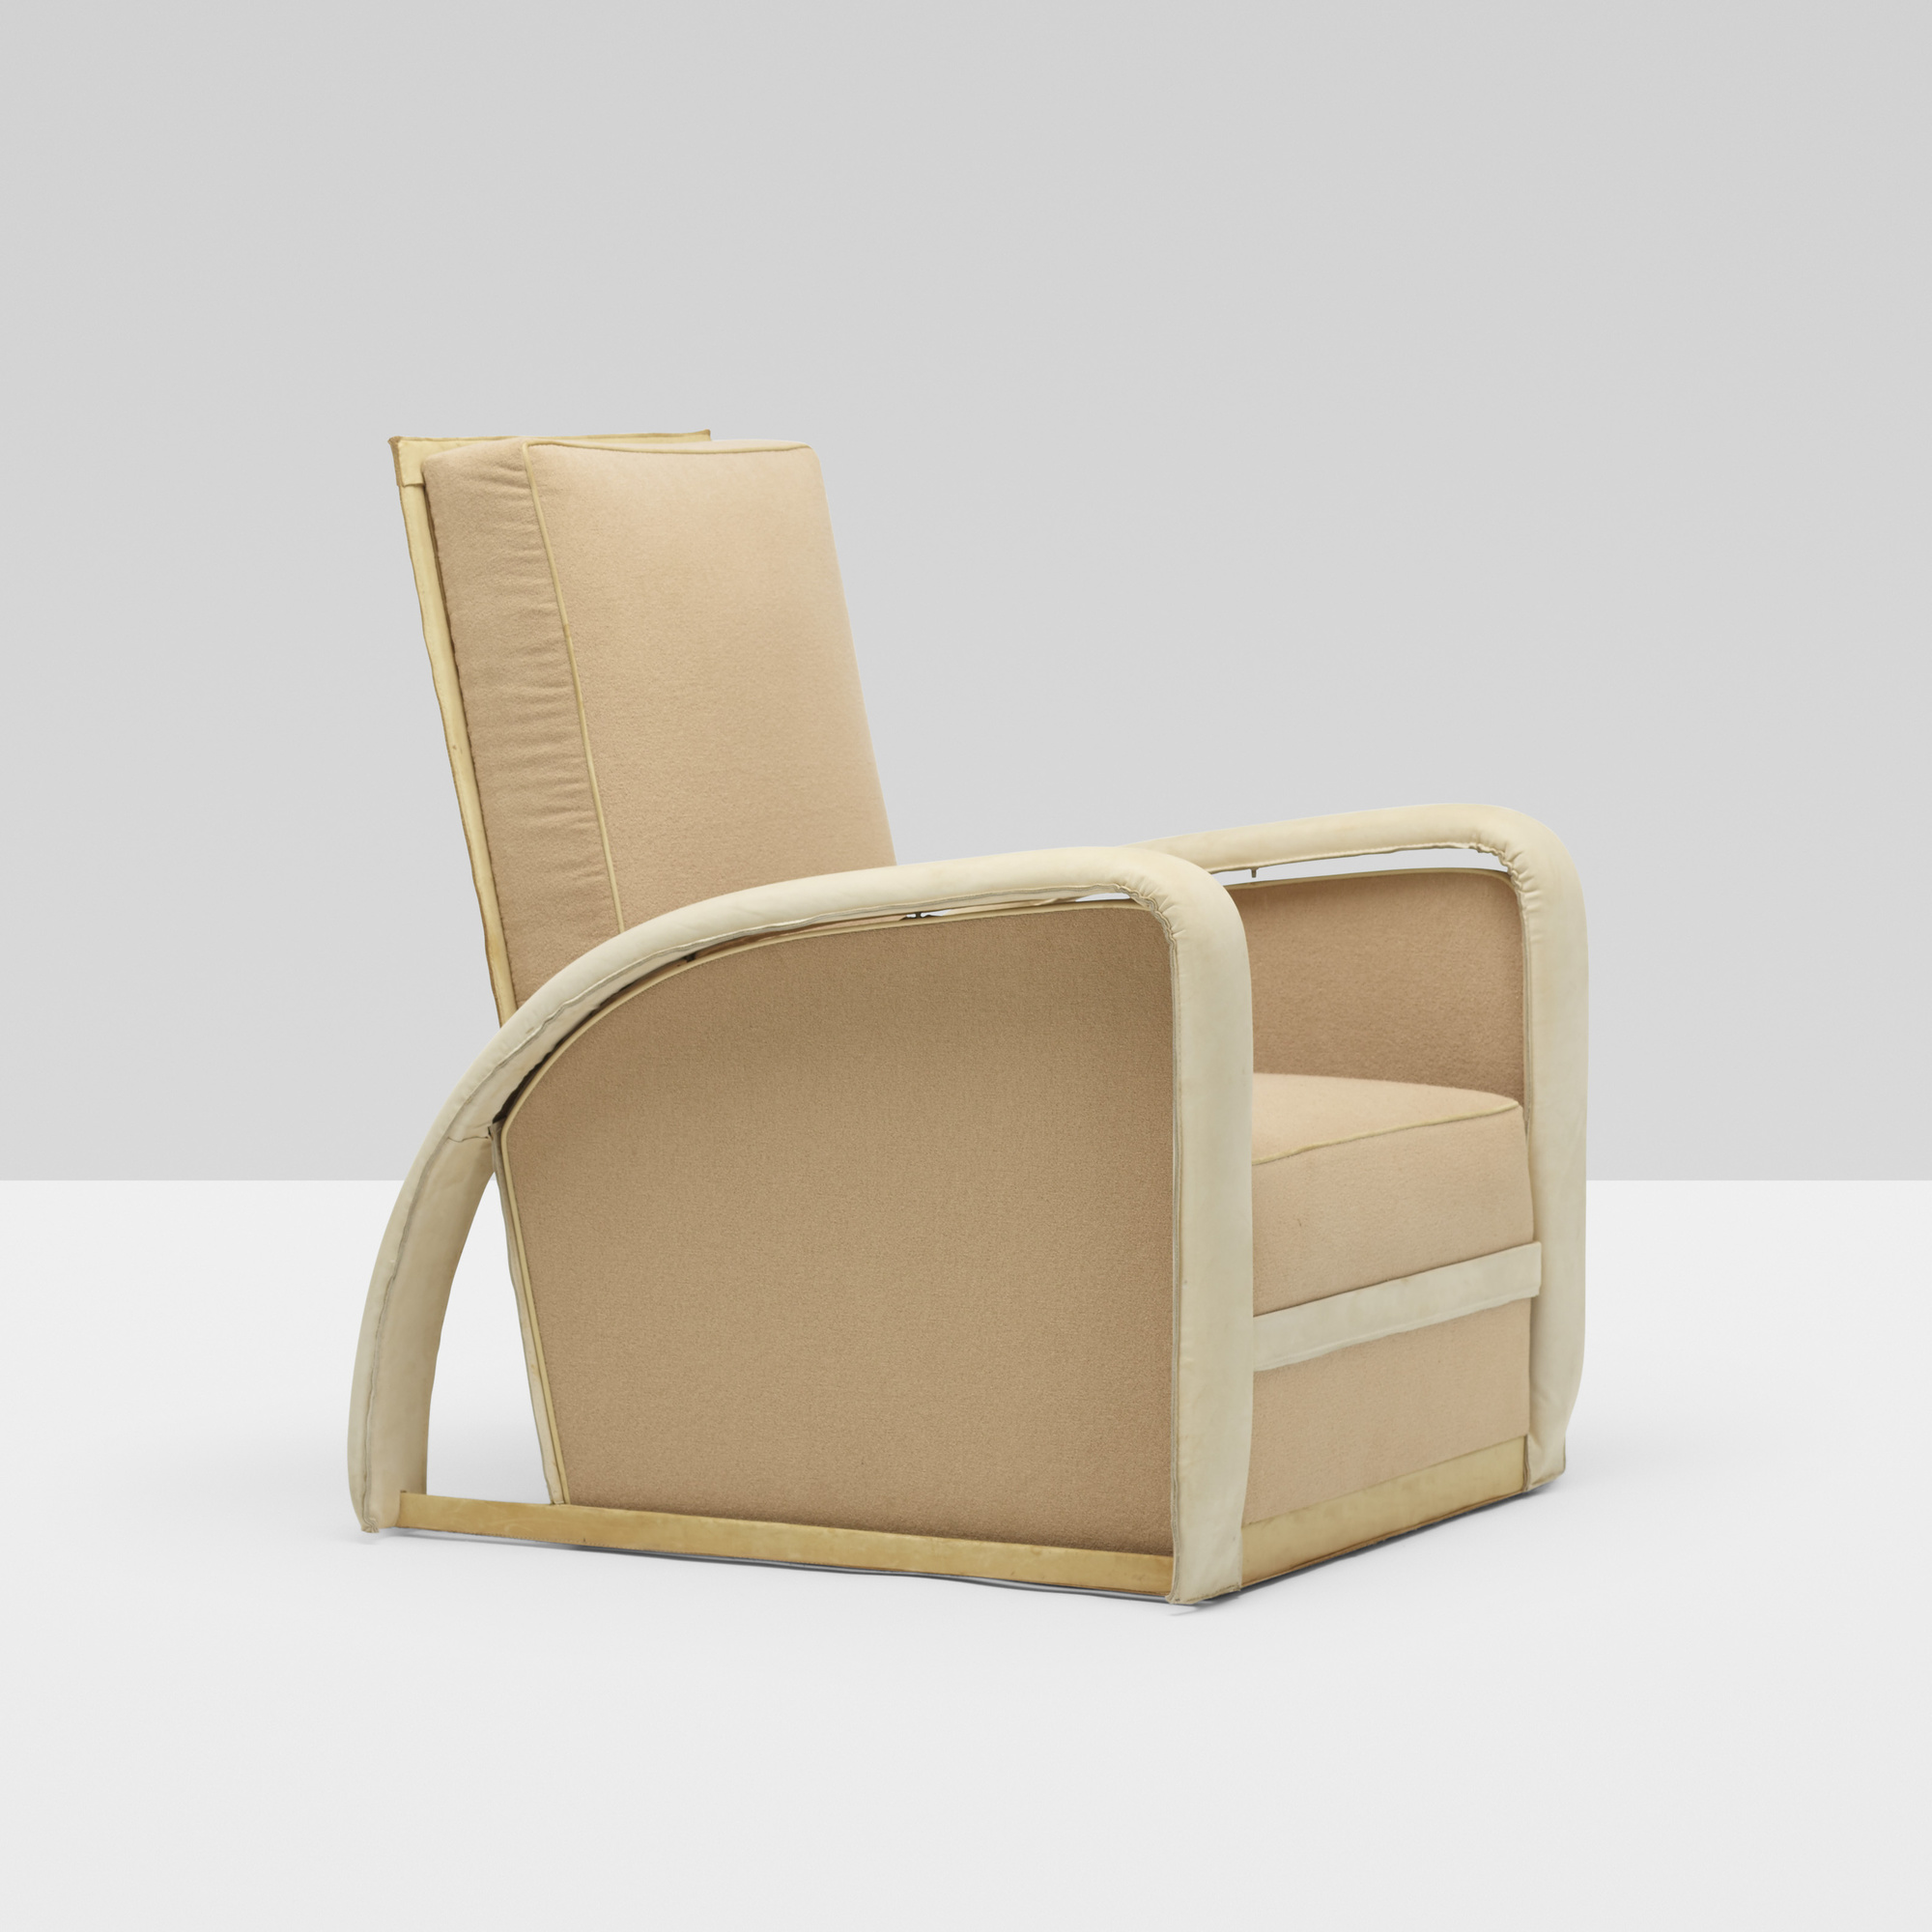 398: Jacques Adnet / armchair (1 of 4)